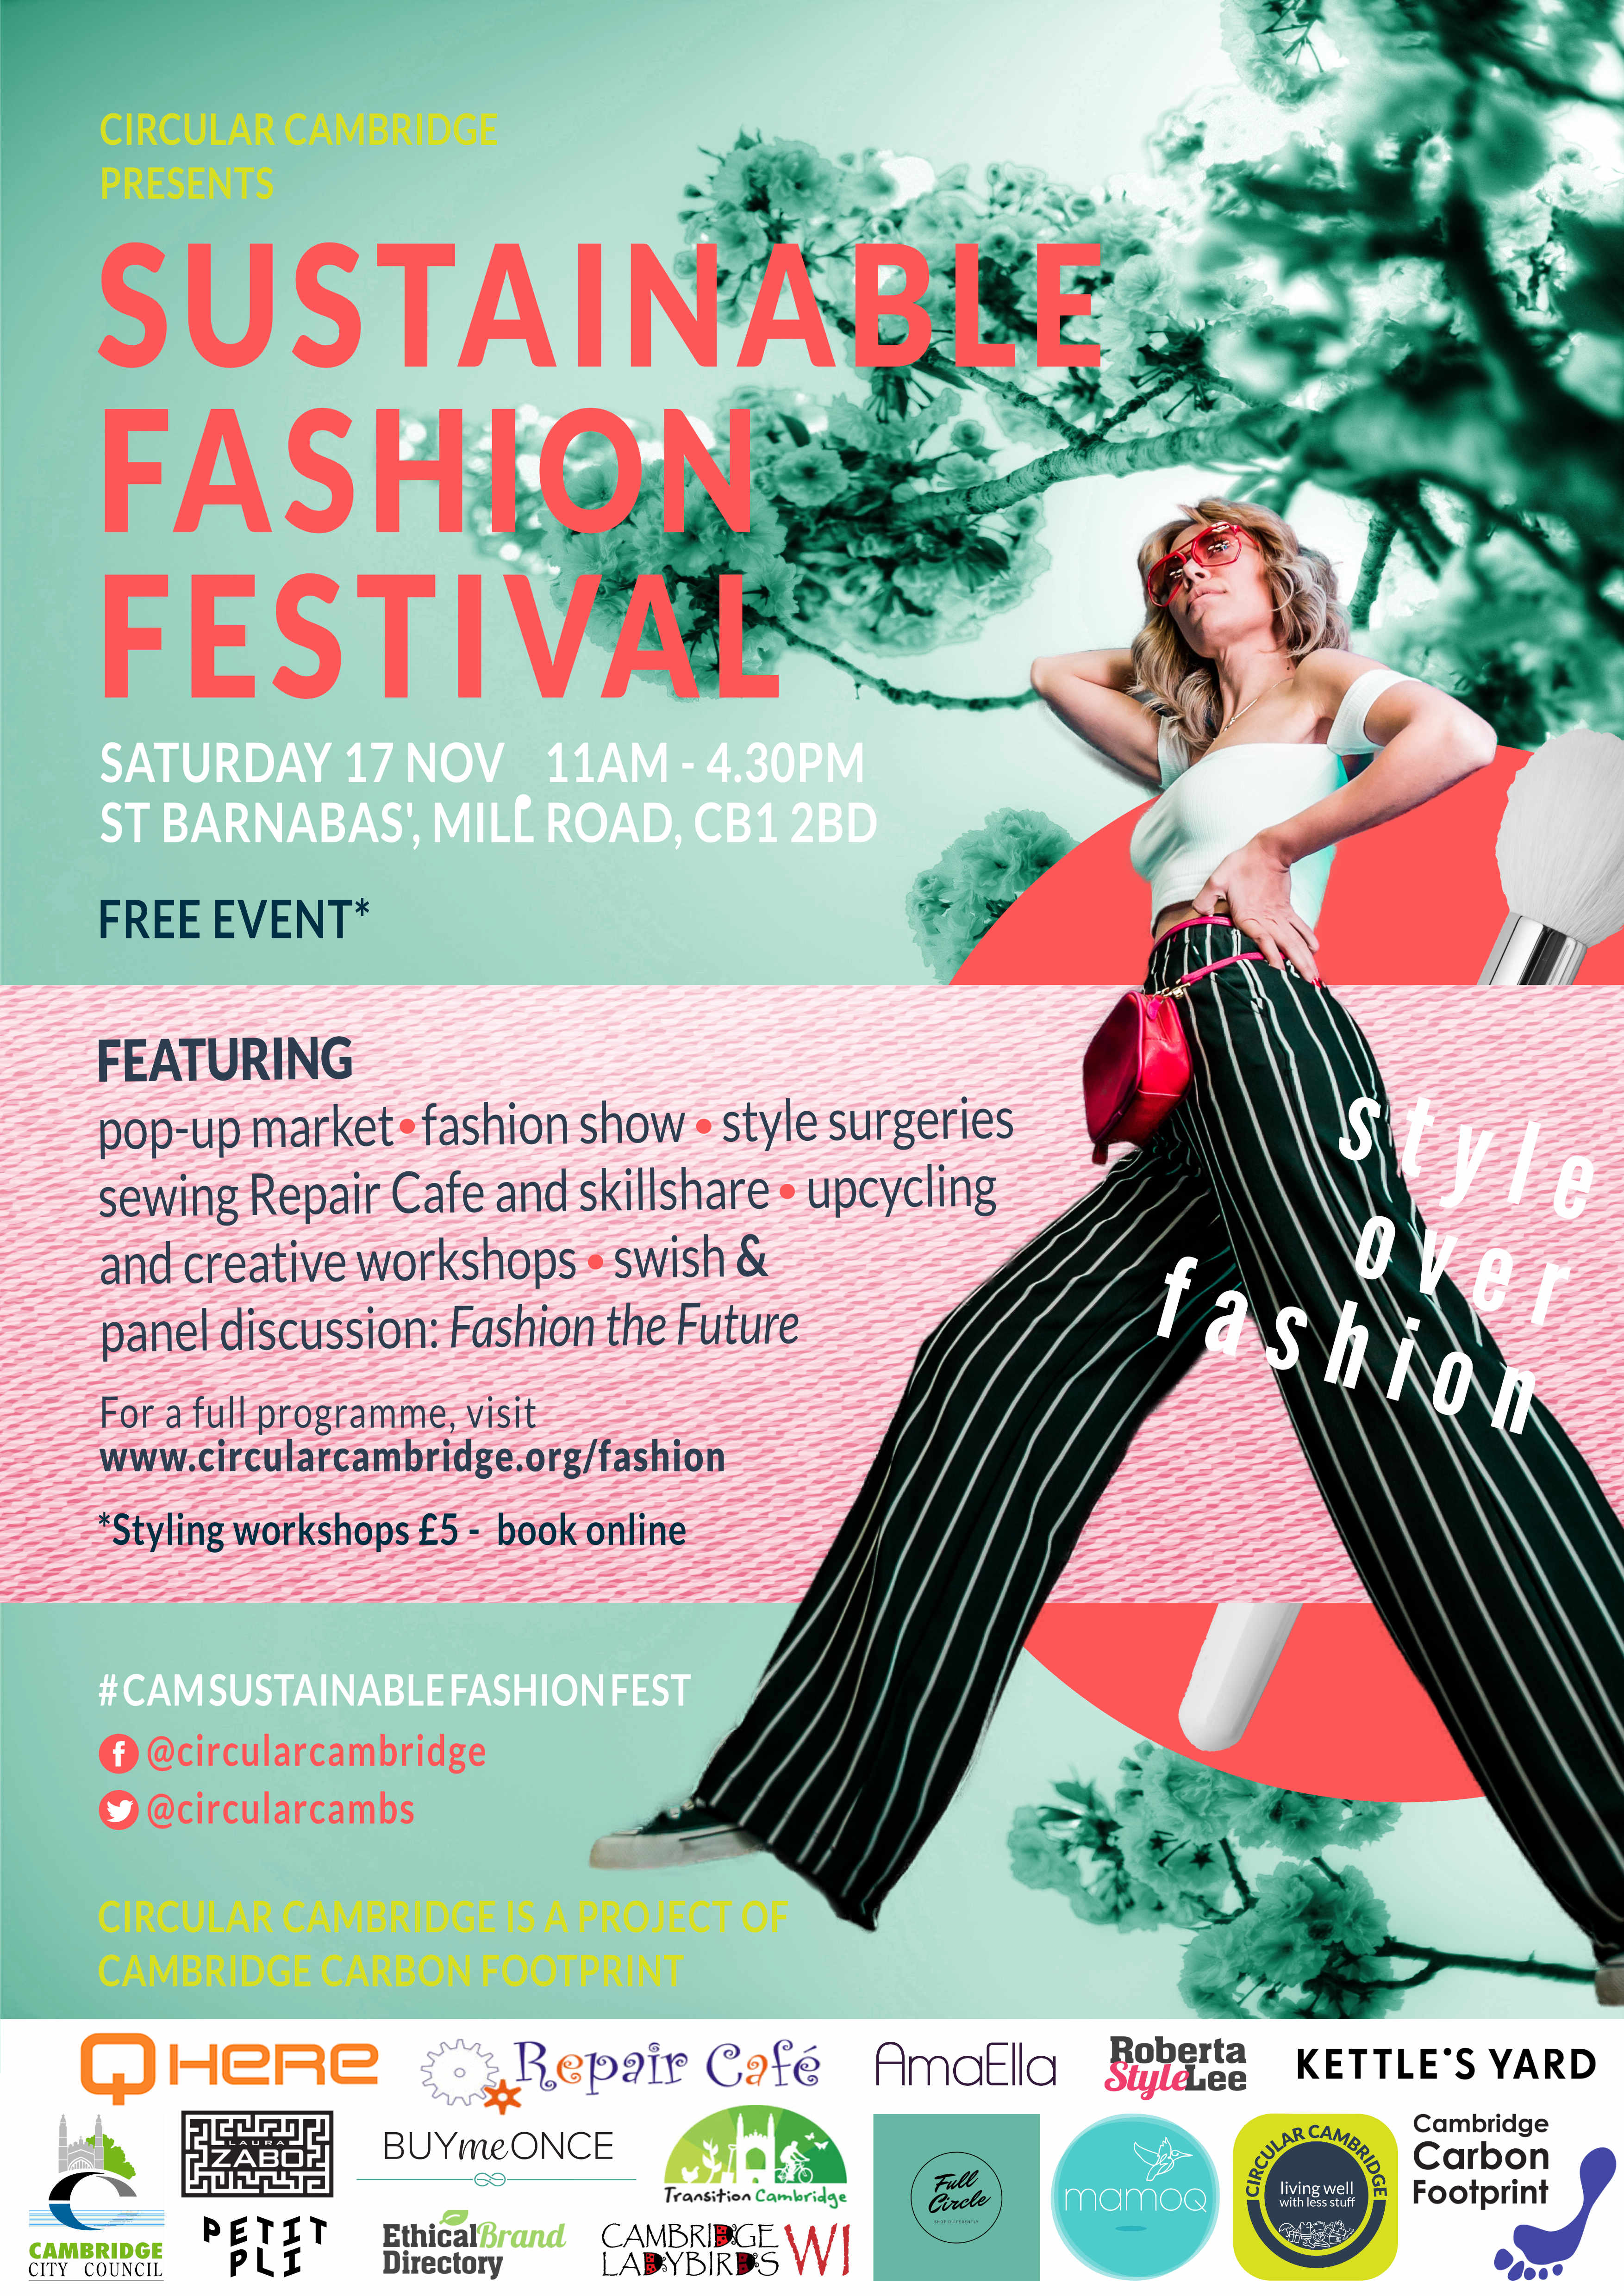 sustainable fashion festival circular cambridge